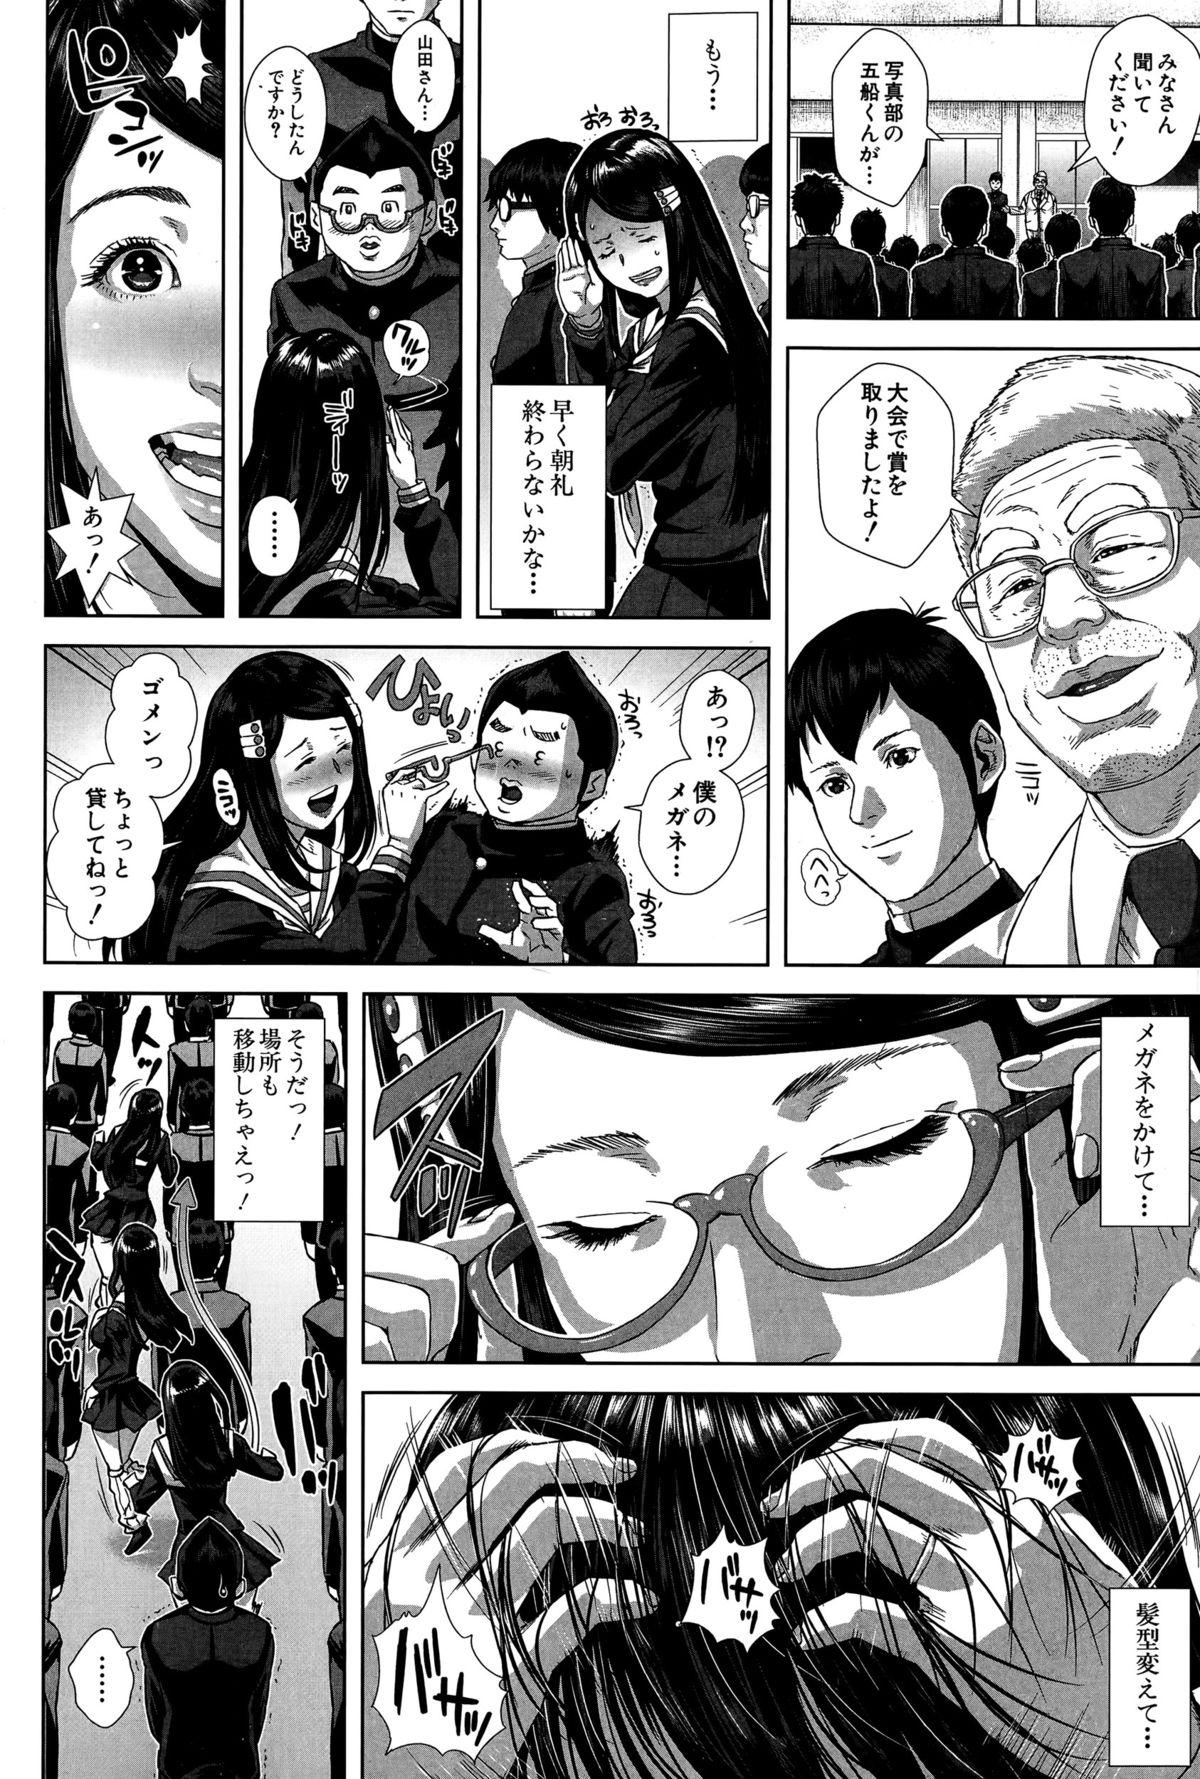 BUSTER COMIC 2015-07 133